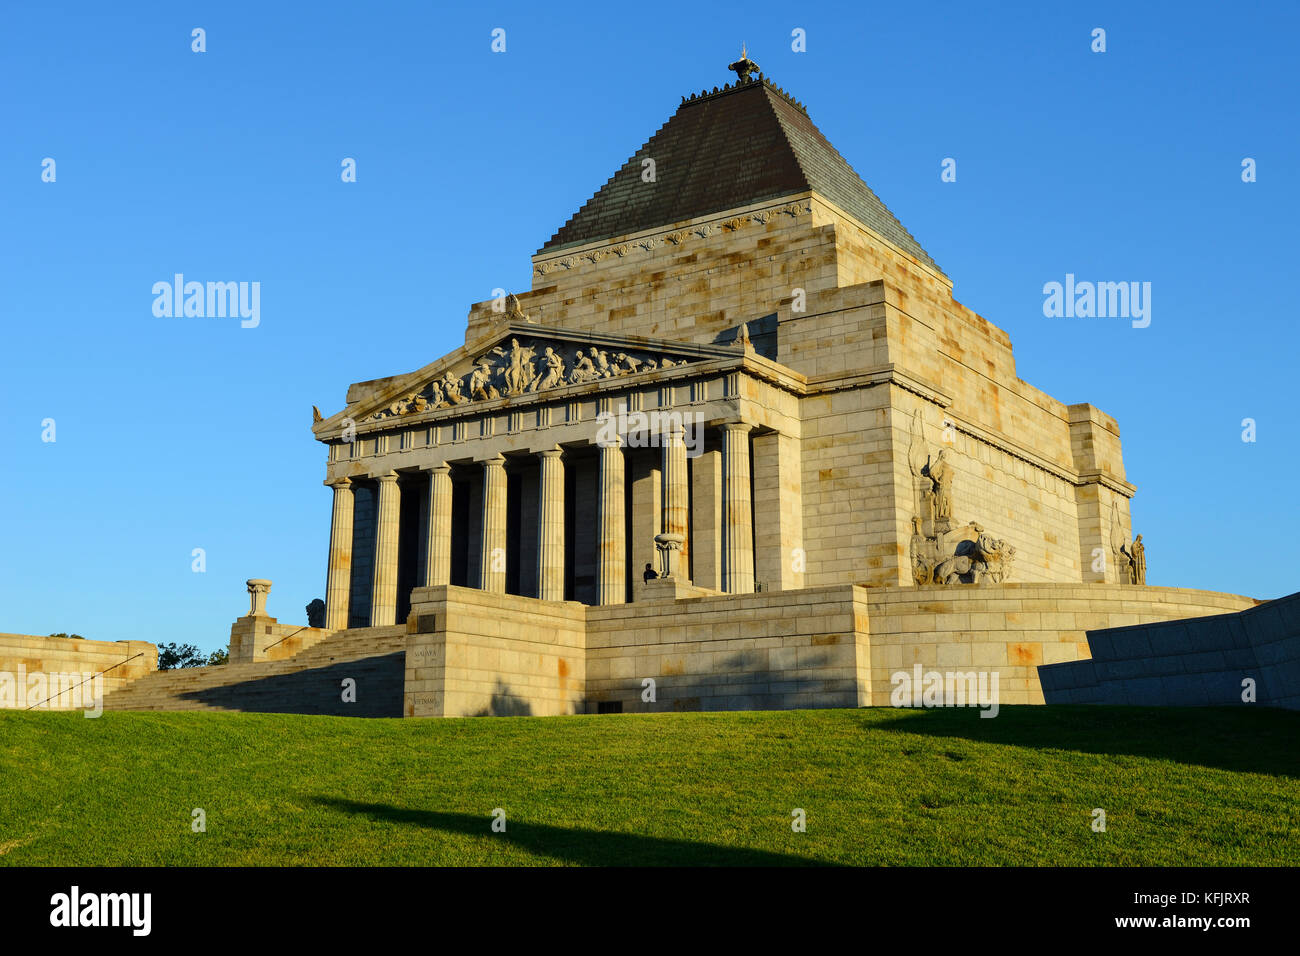 Shrine of Remembrance within the King's Domain Park in Melbourne, Victoria, Australia - Stock Image